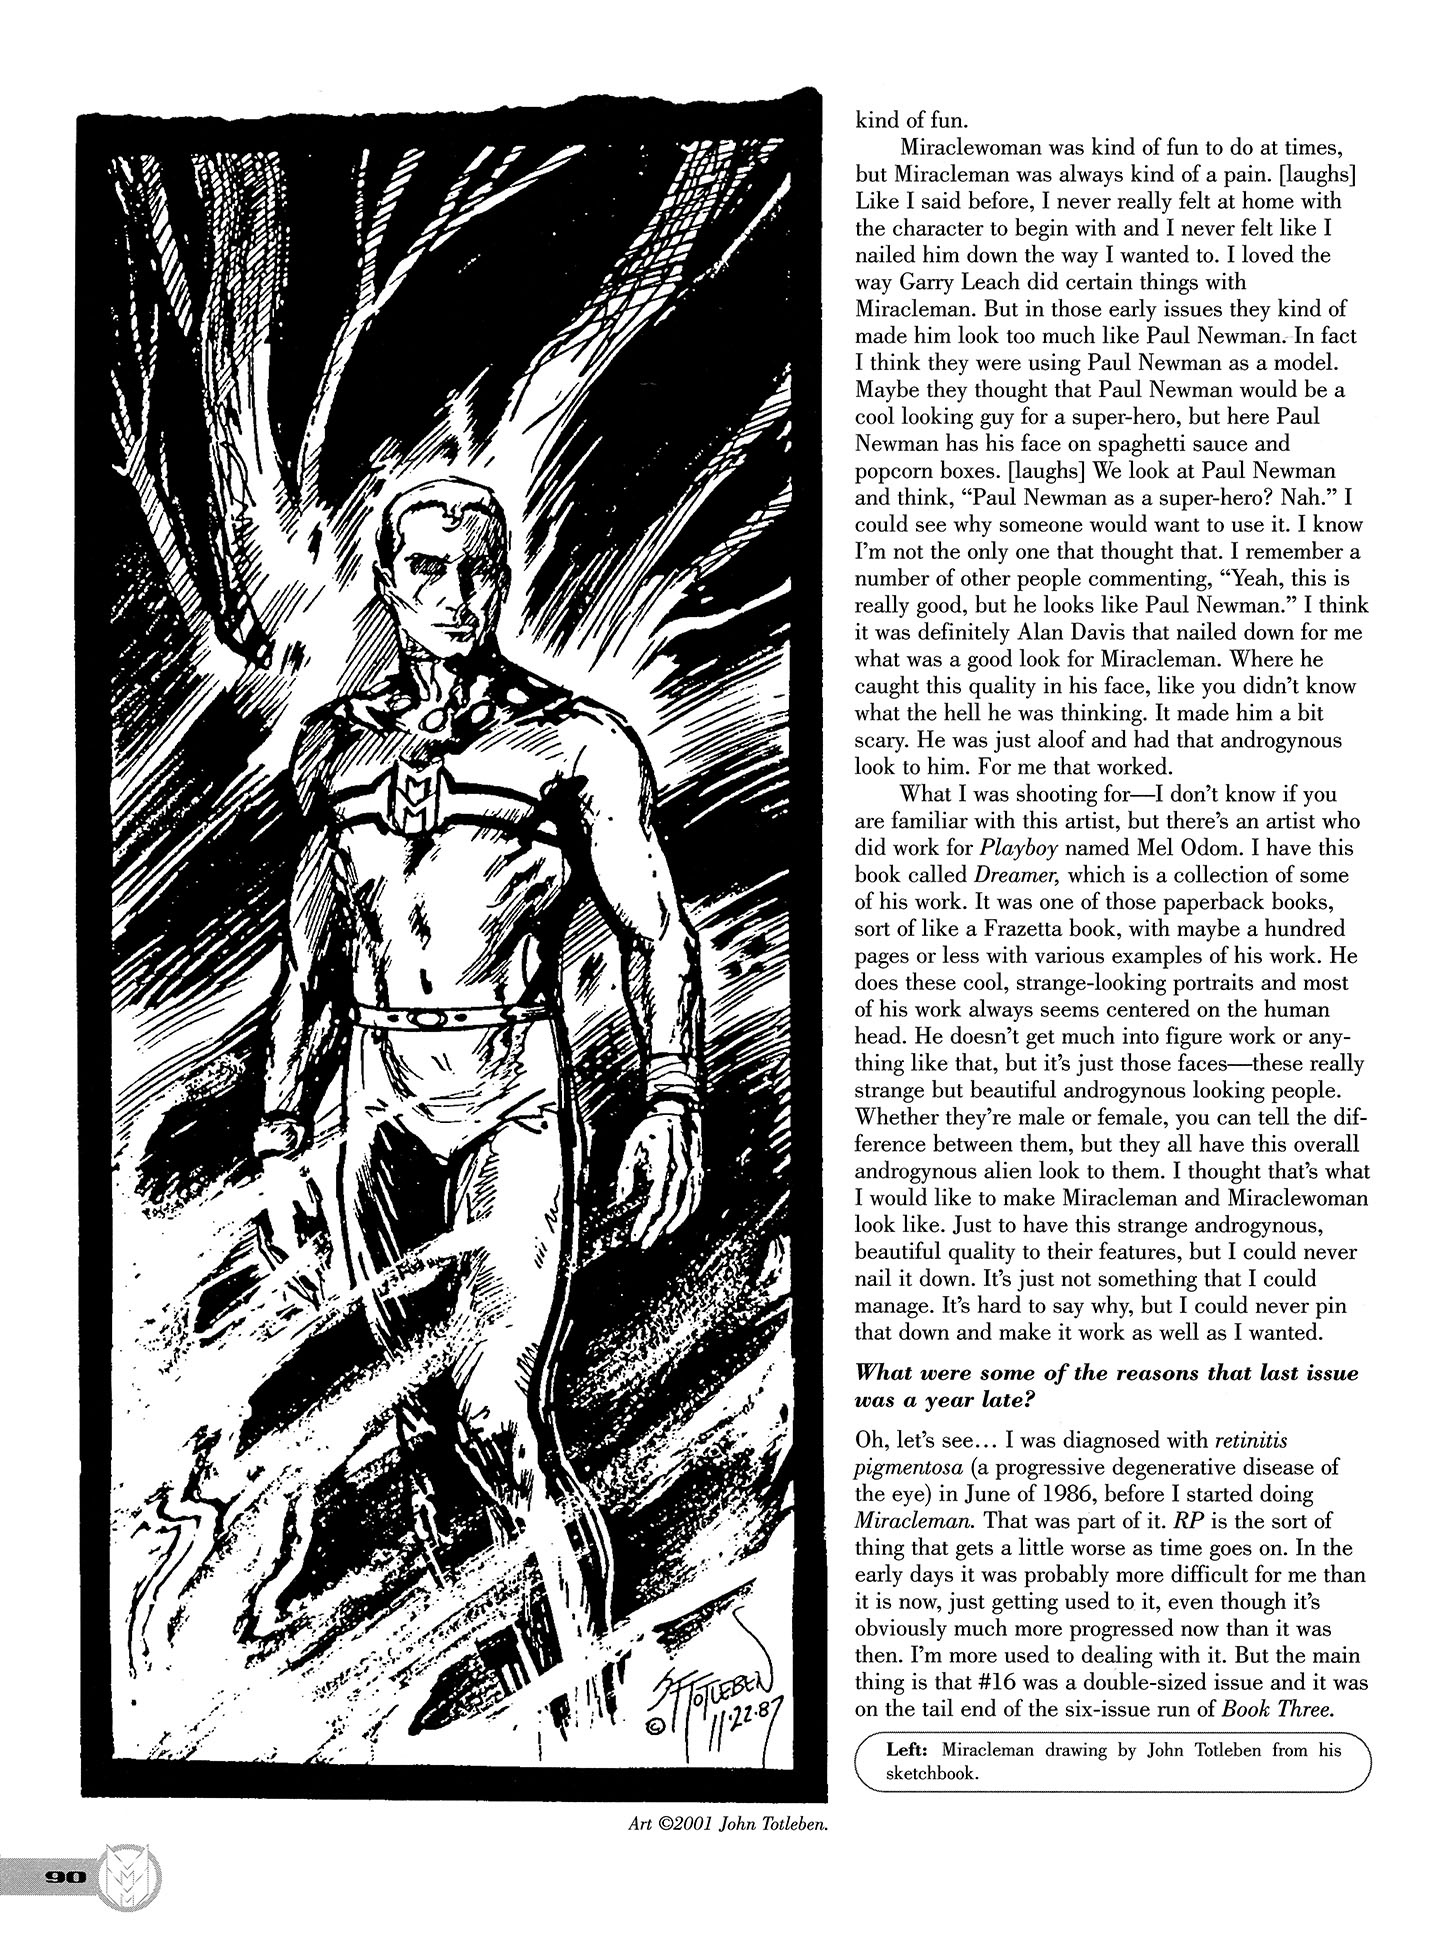 Read online Kimota!: The Miracleman Companion comic -  Issue # Full - 91